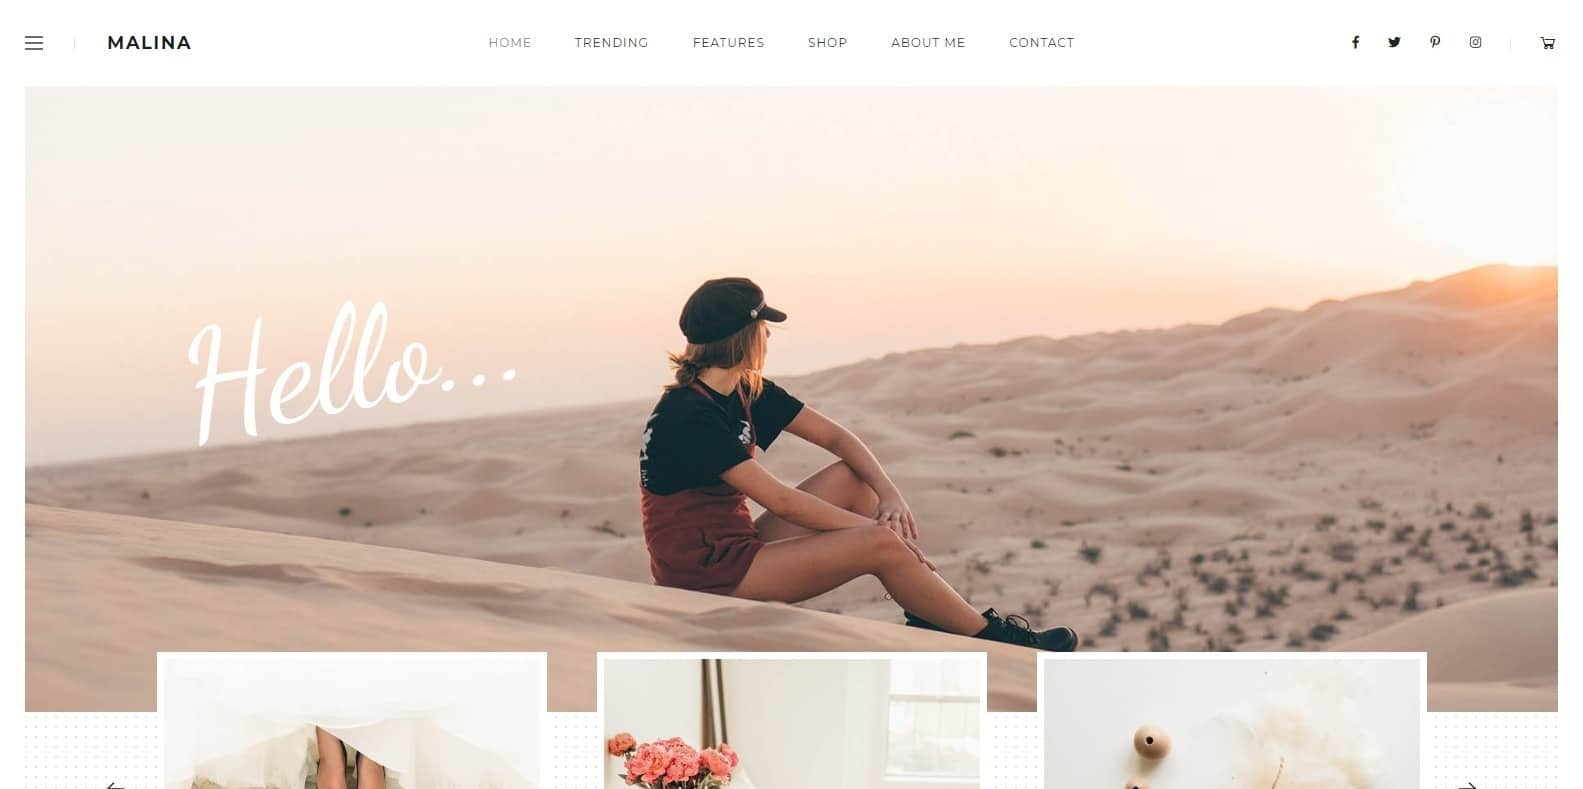 malina-food-blog-website-template